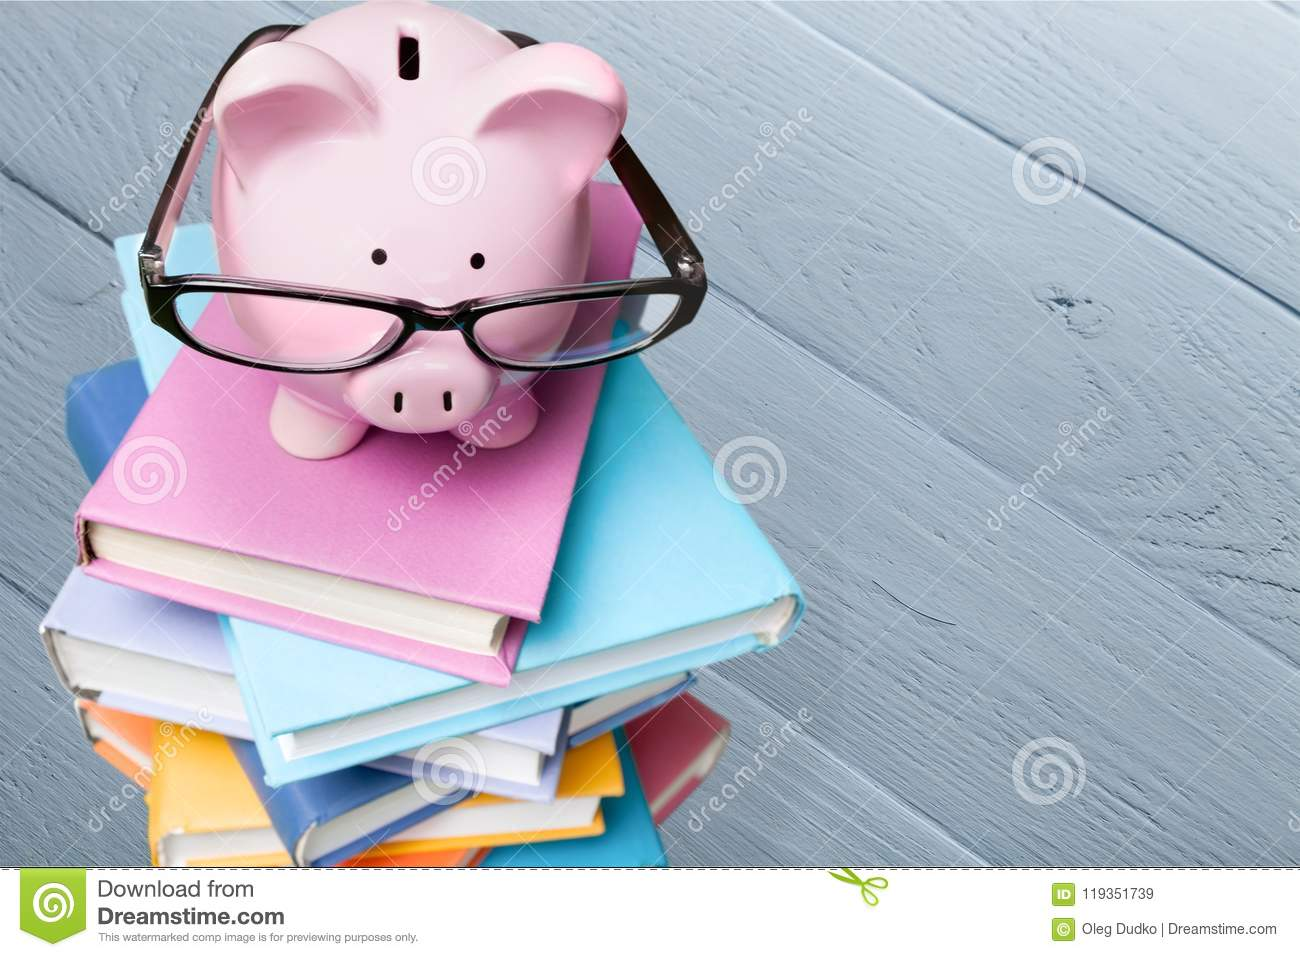 9892c6aad557 Finance piggy bank education book home finances savings learning